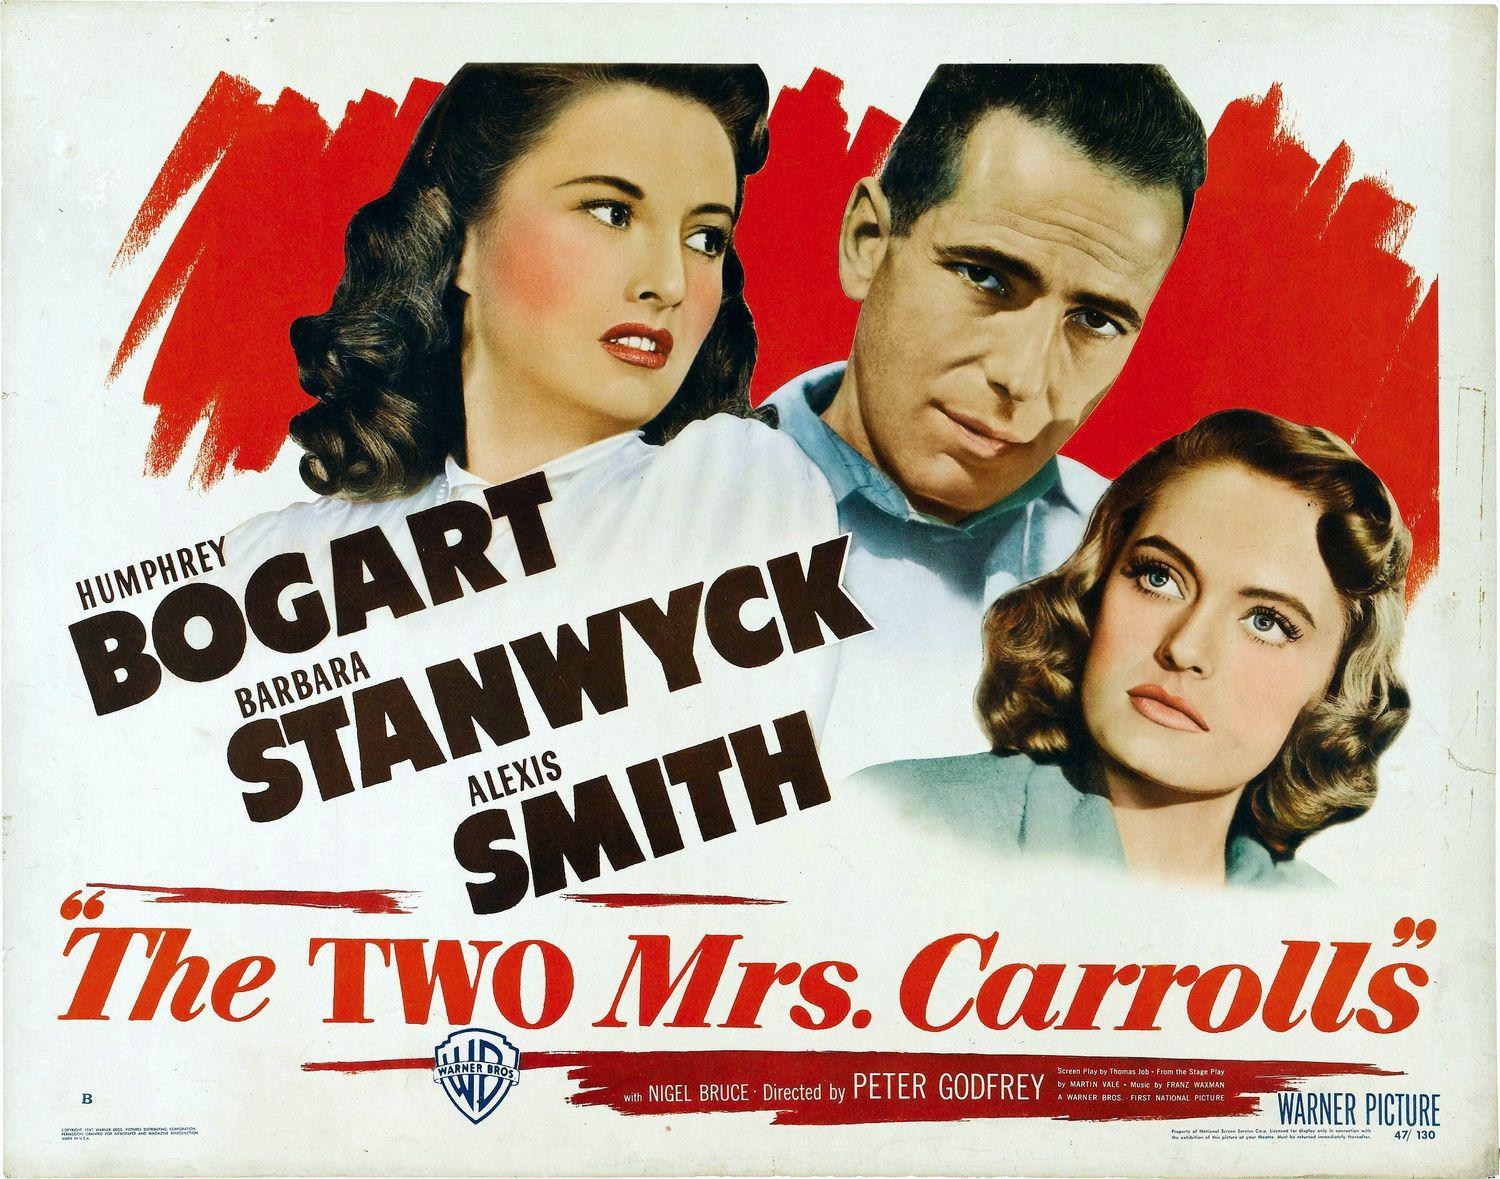 Two Mrs Carrolls - Humprey Bogart - Barbara Stanwy - Alexis Smith - old poster